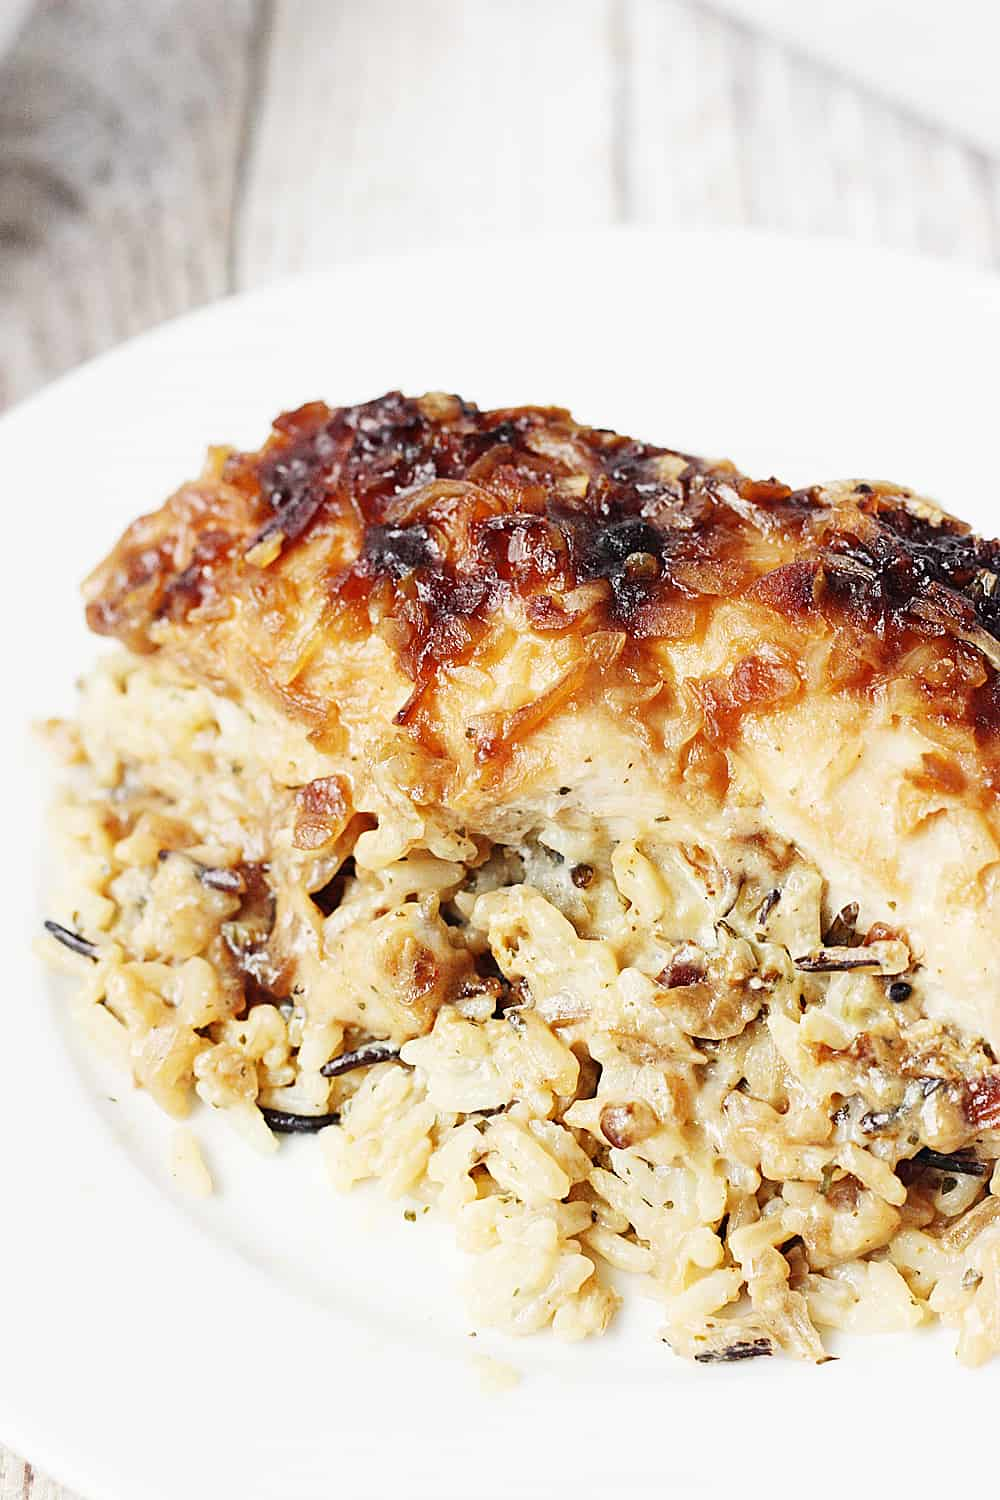 6. One-Pan No Peek Chicken and Rice